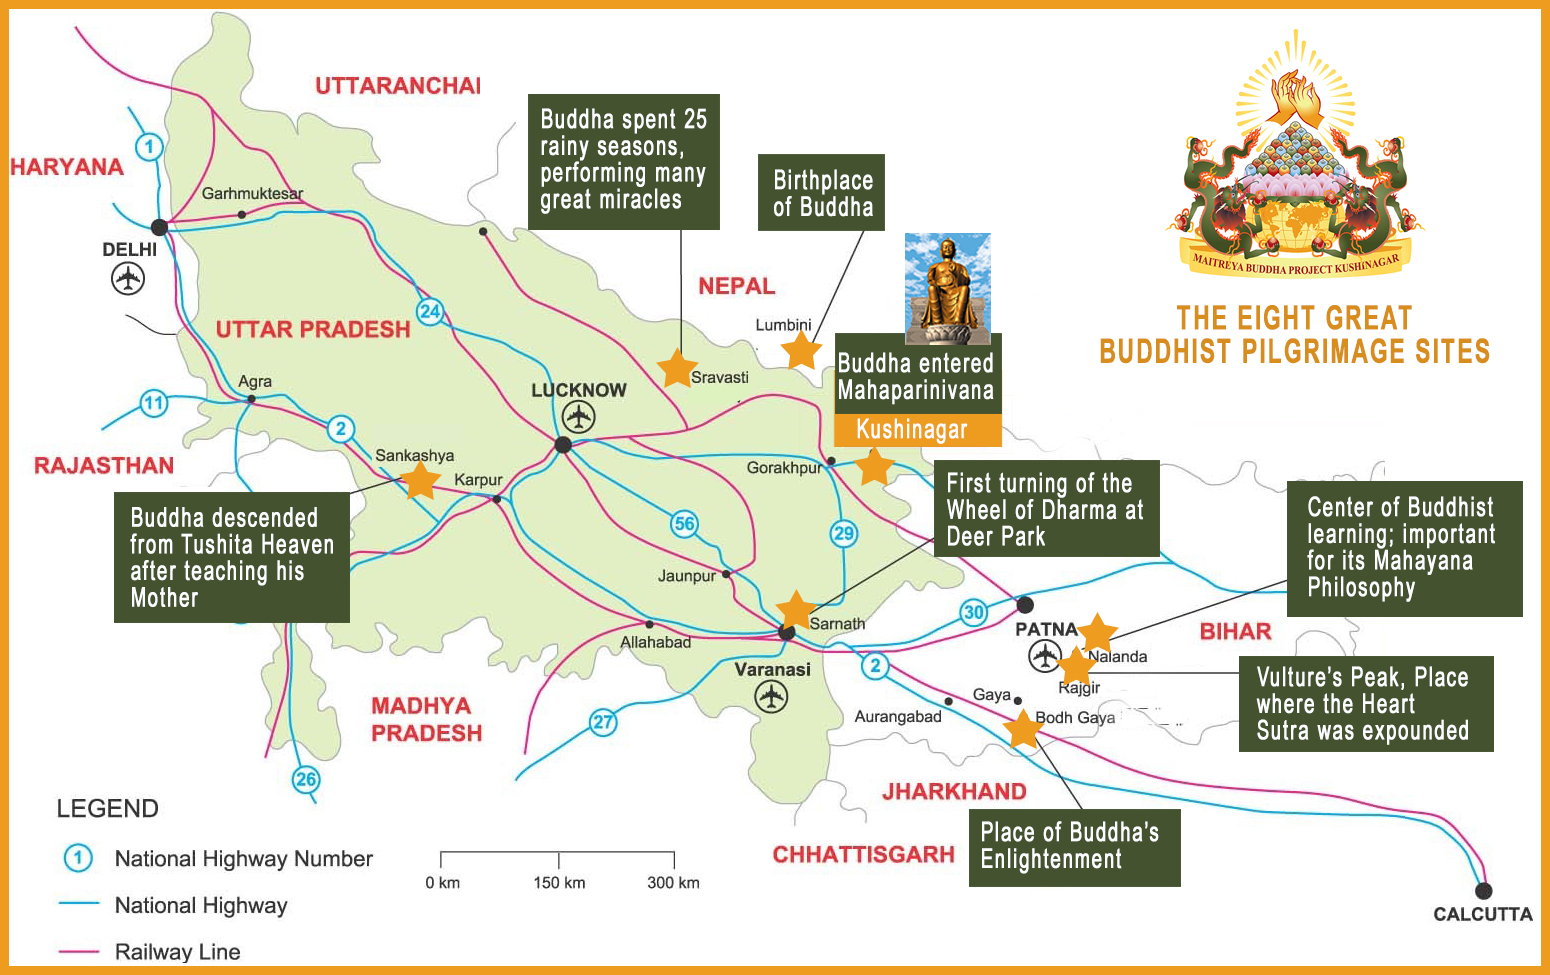 The Eight Buddhist Pilgrimage Sites